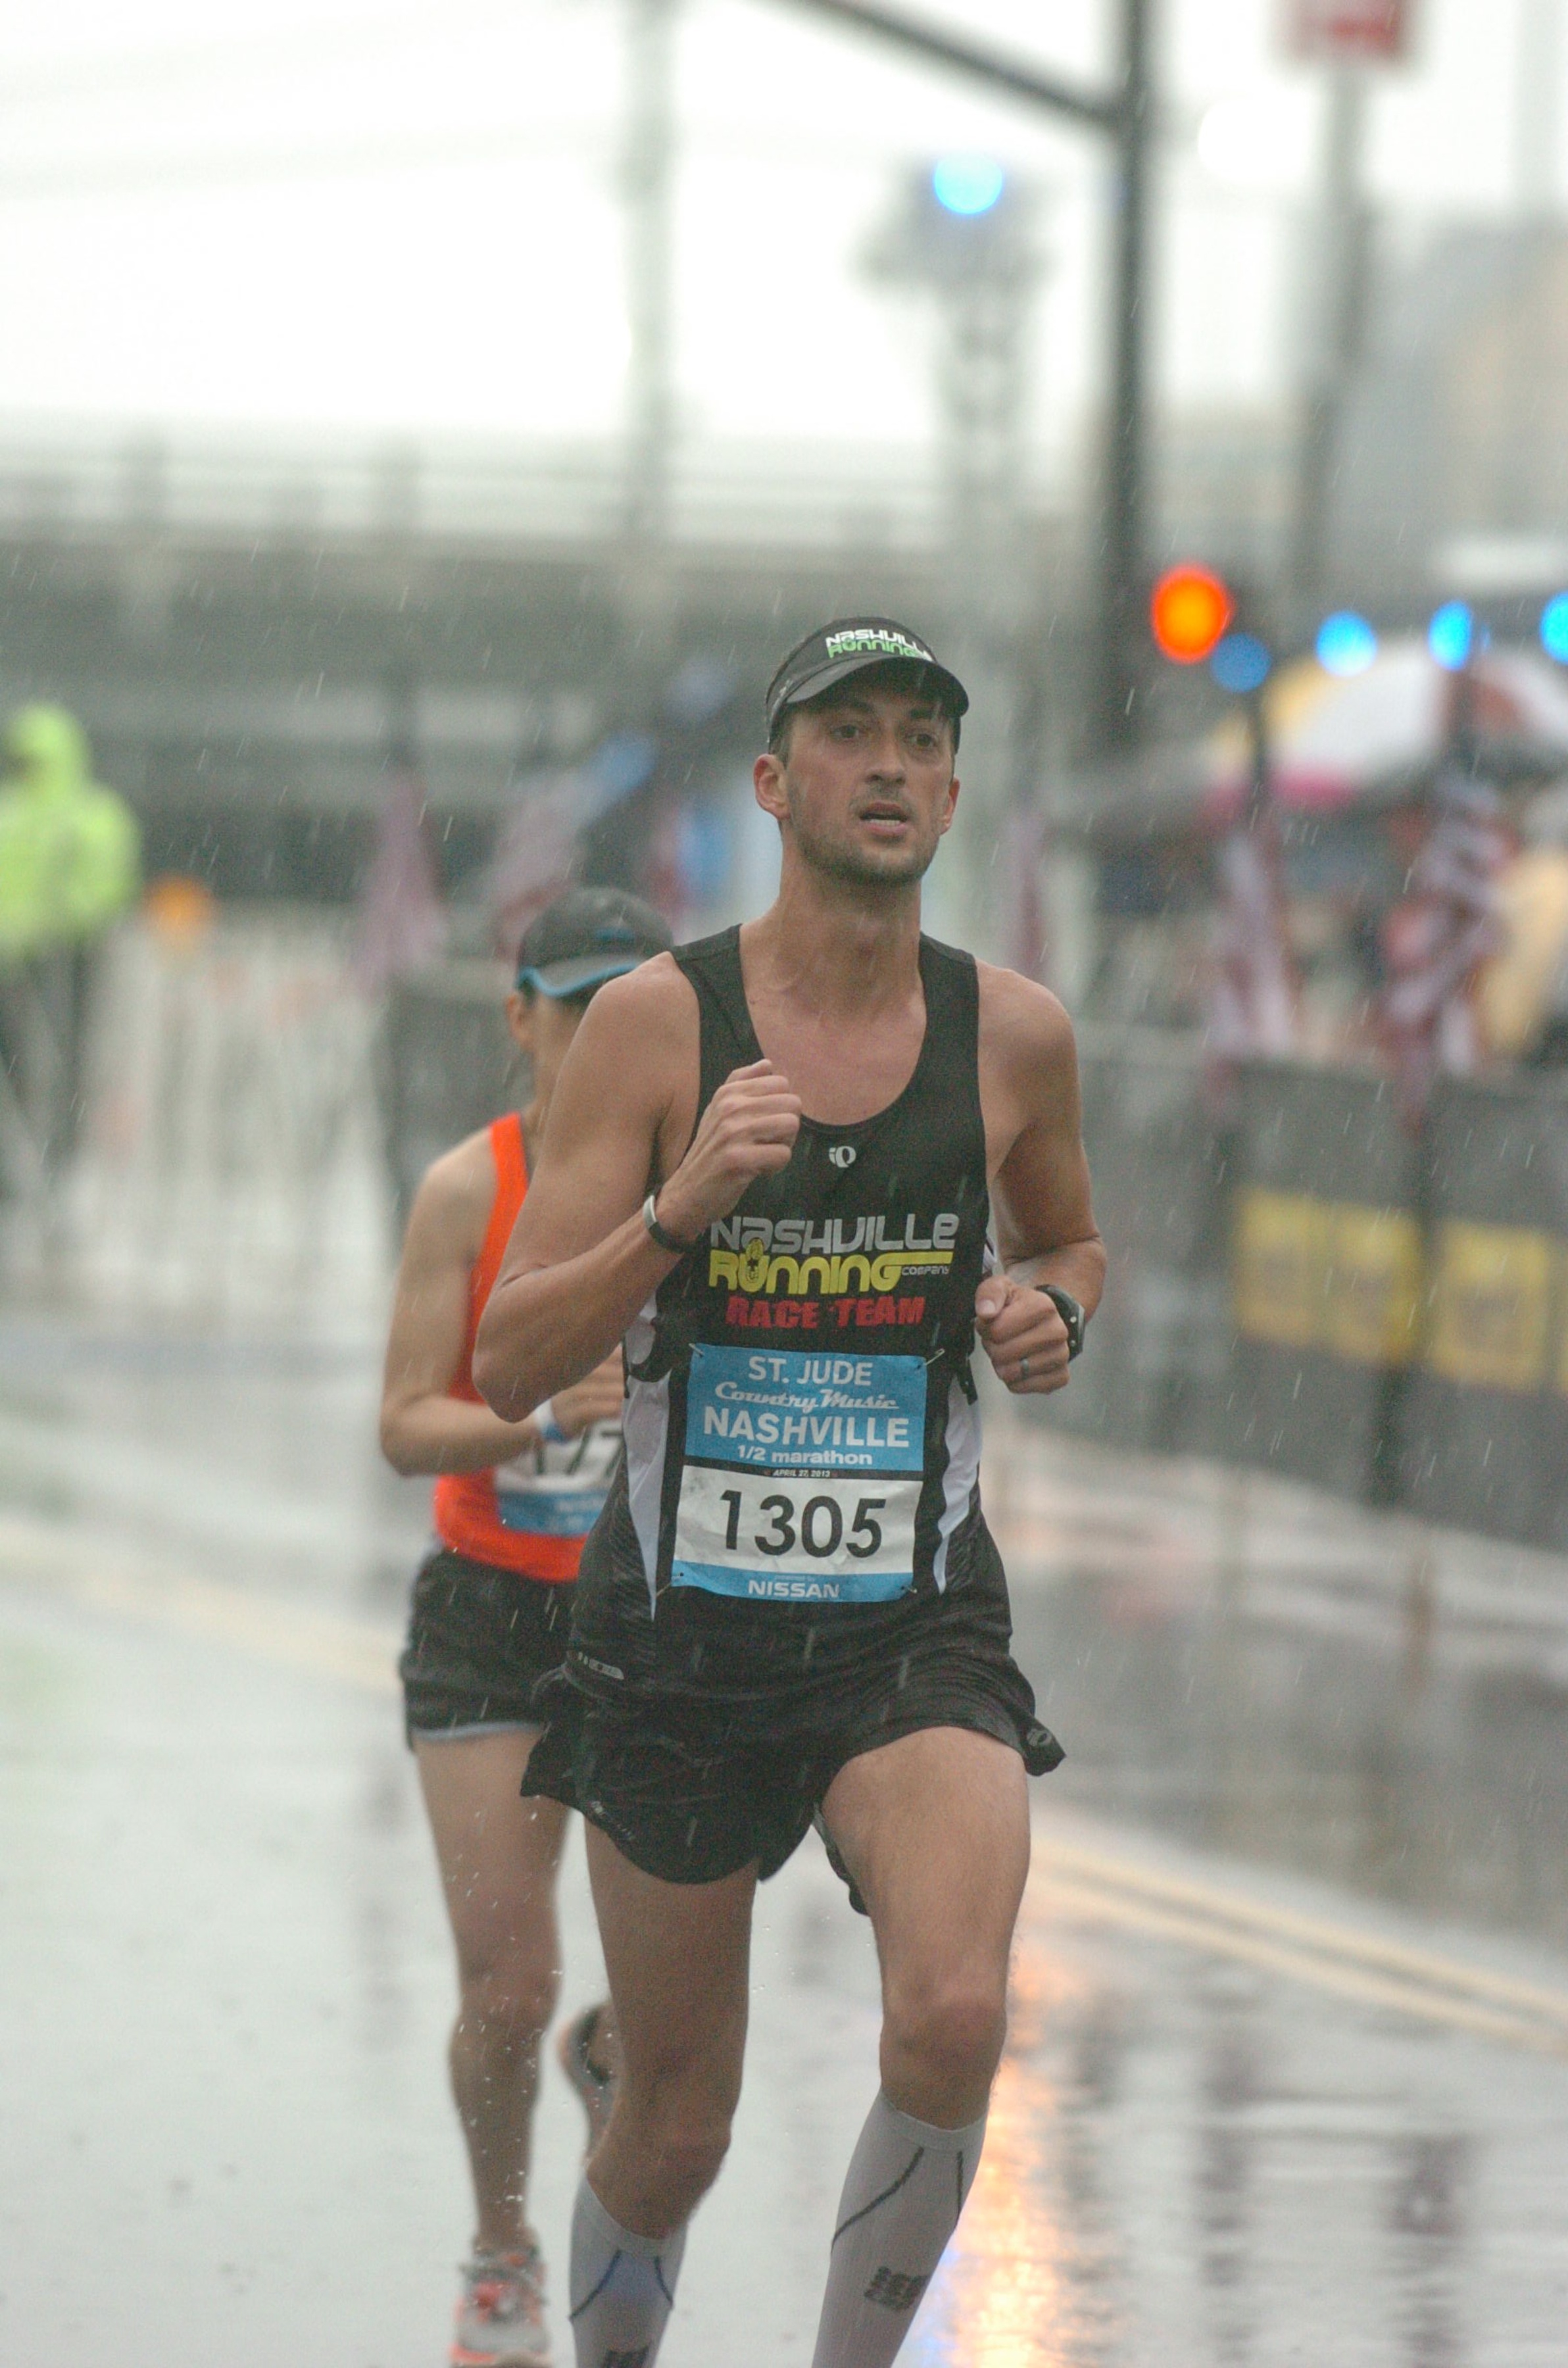 setting my half-marathon PR at Country Music this year (my first race on the NRC race team)